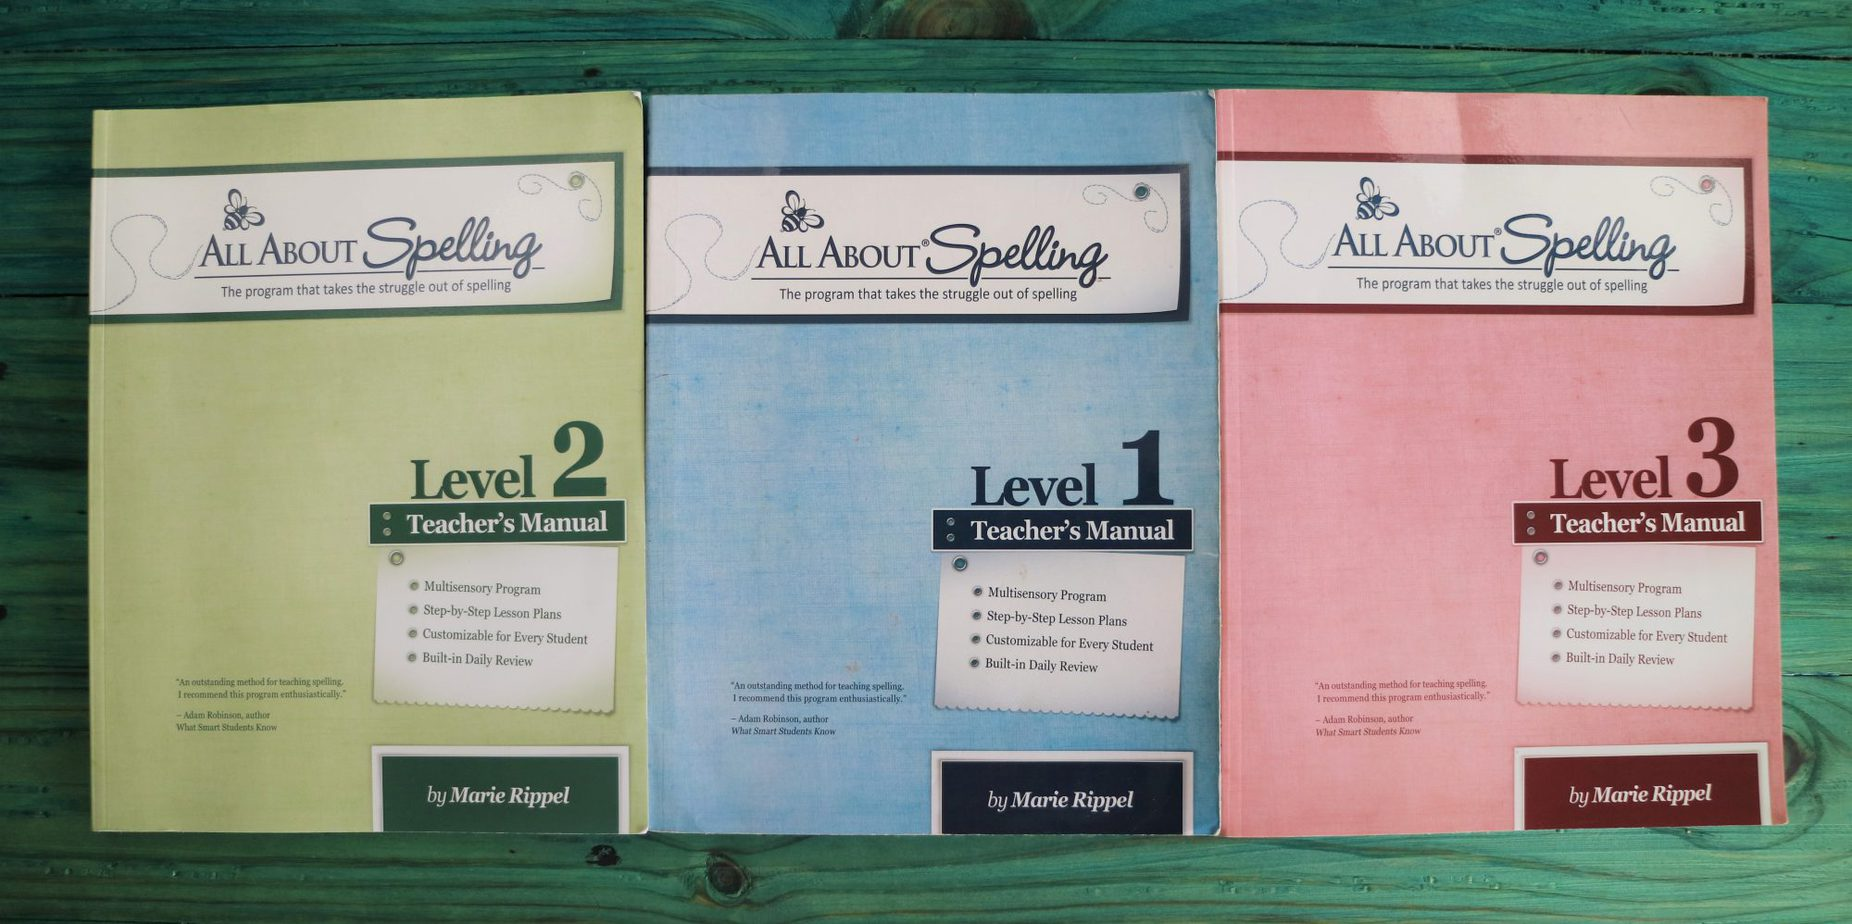 All About Spelling review teacher's manualslevels 1, 2, and 3